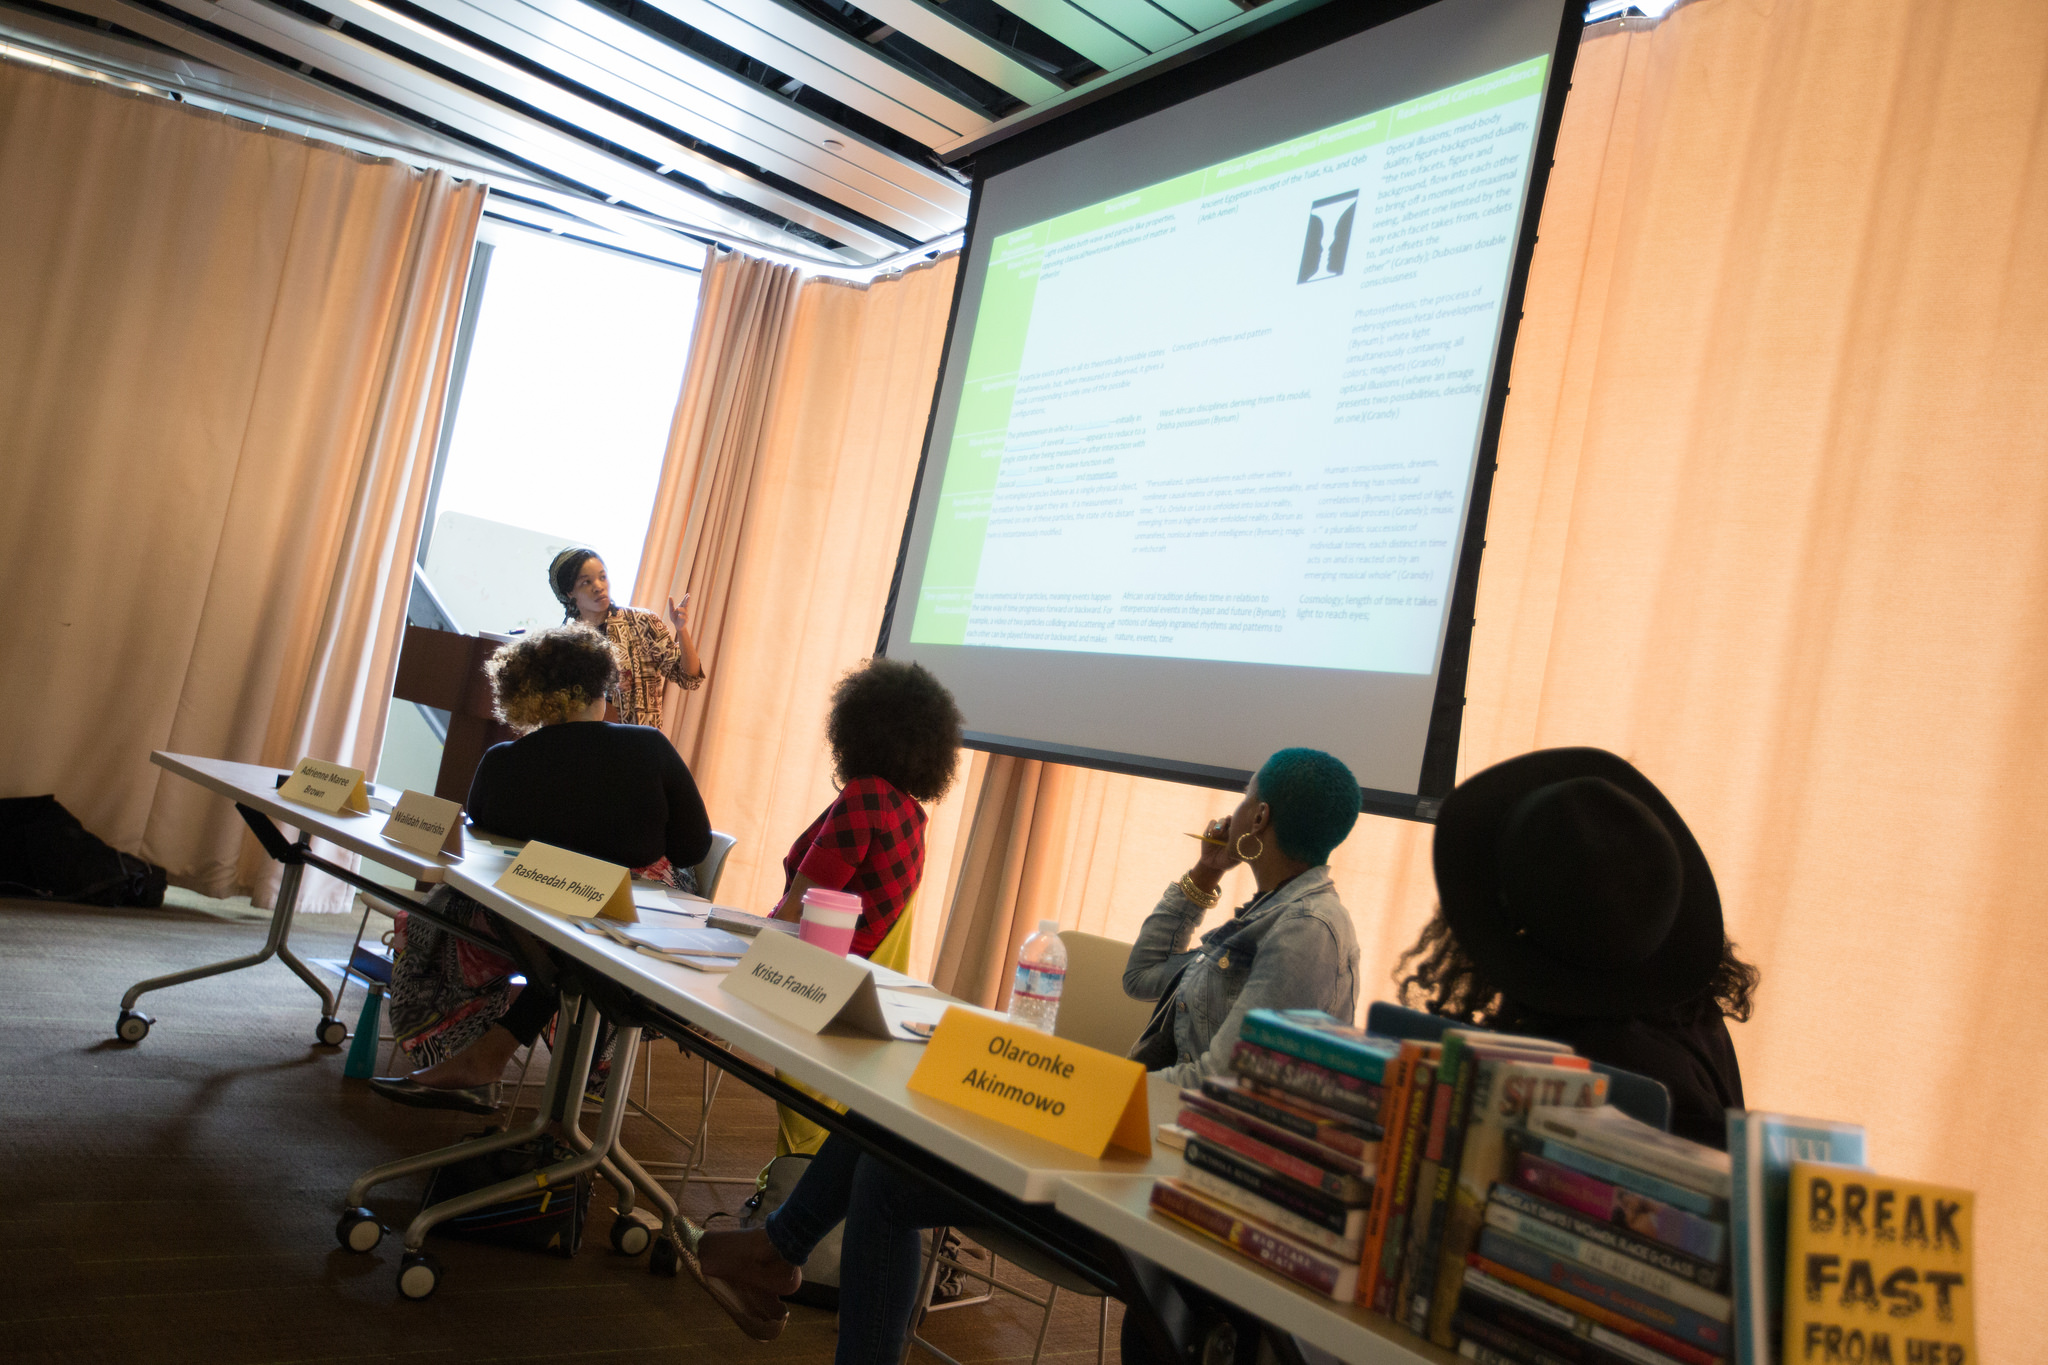 Applications of Black Feminist Thought Panel